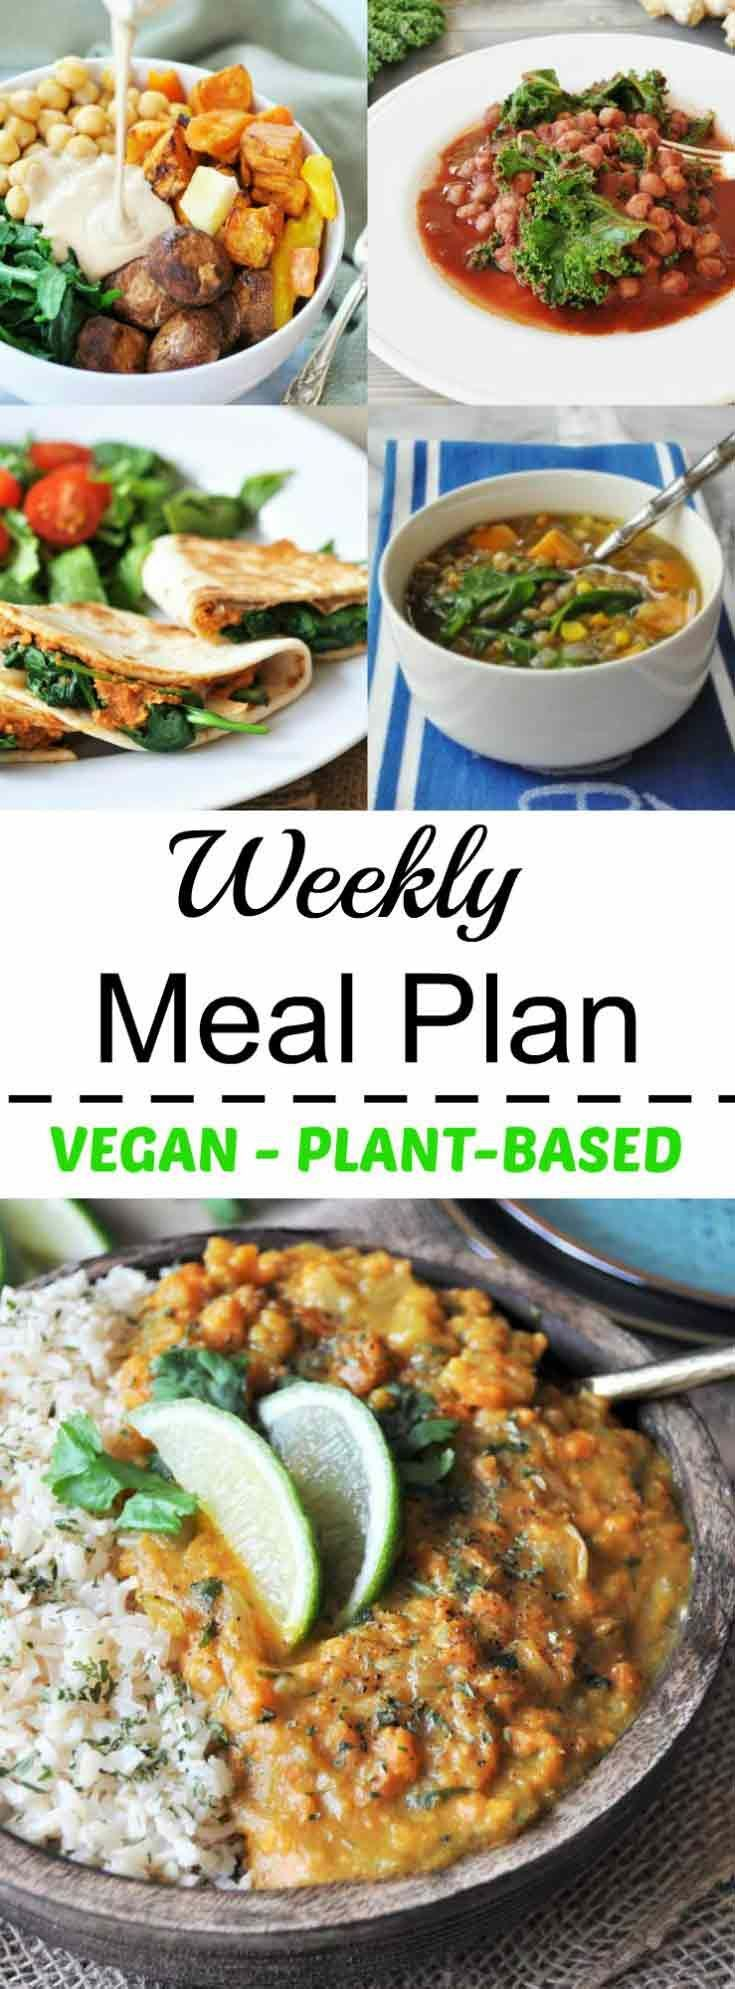 Vegan weekly meal plan. Healthy, fast, and easy plant-based dinners for weeknight dinners